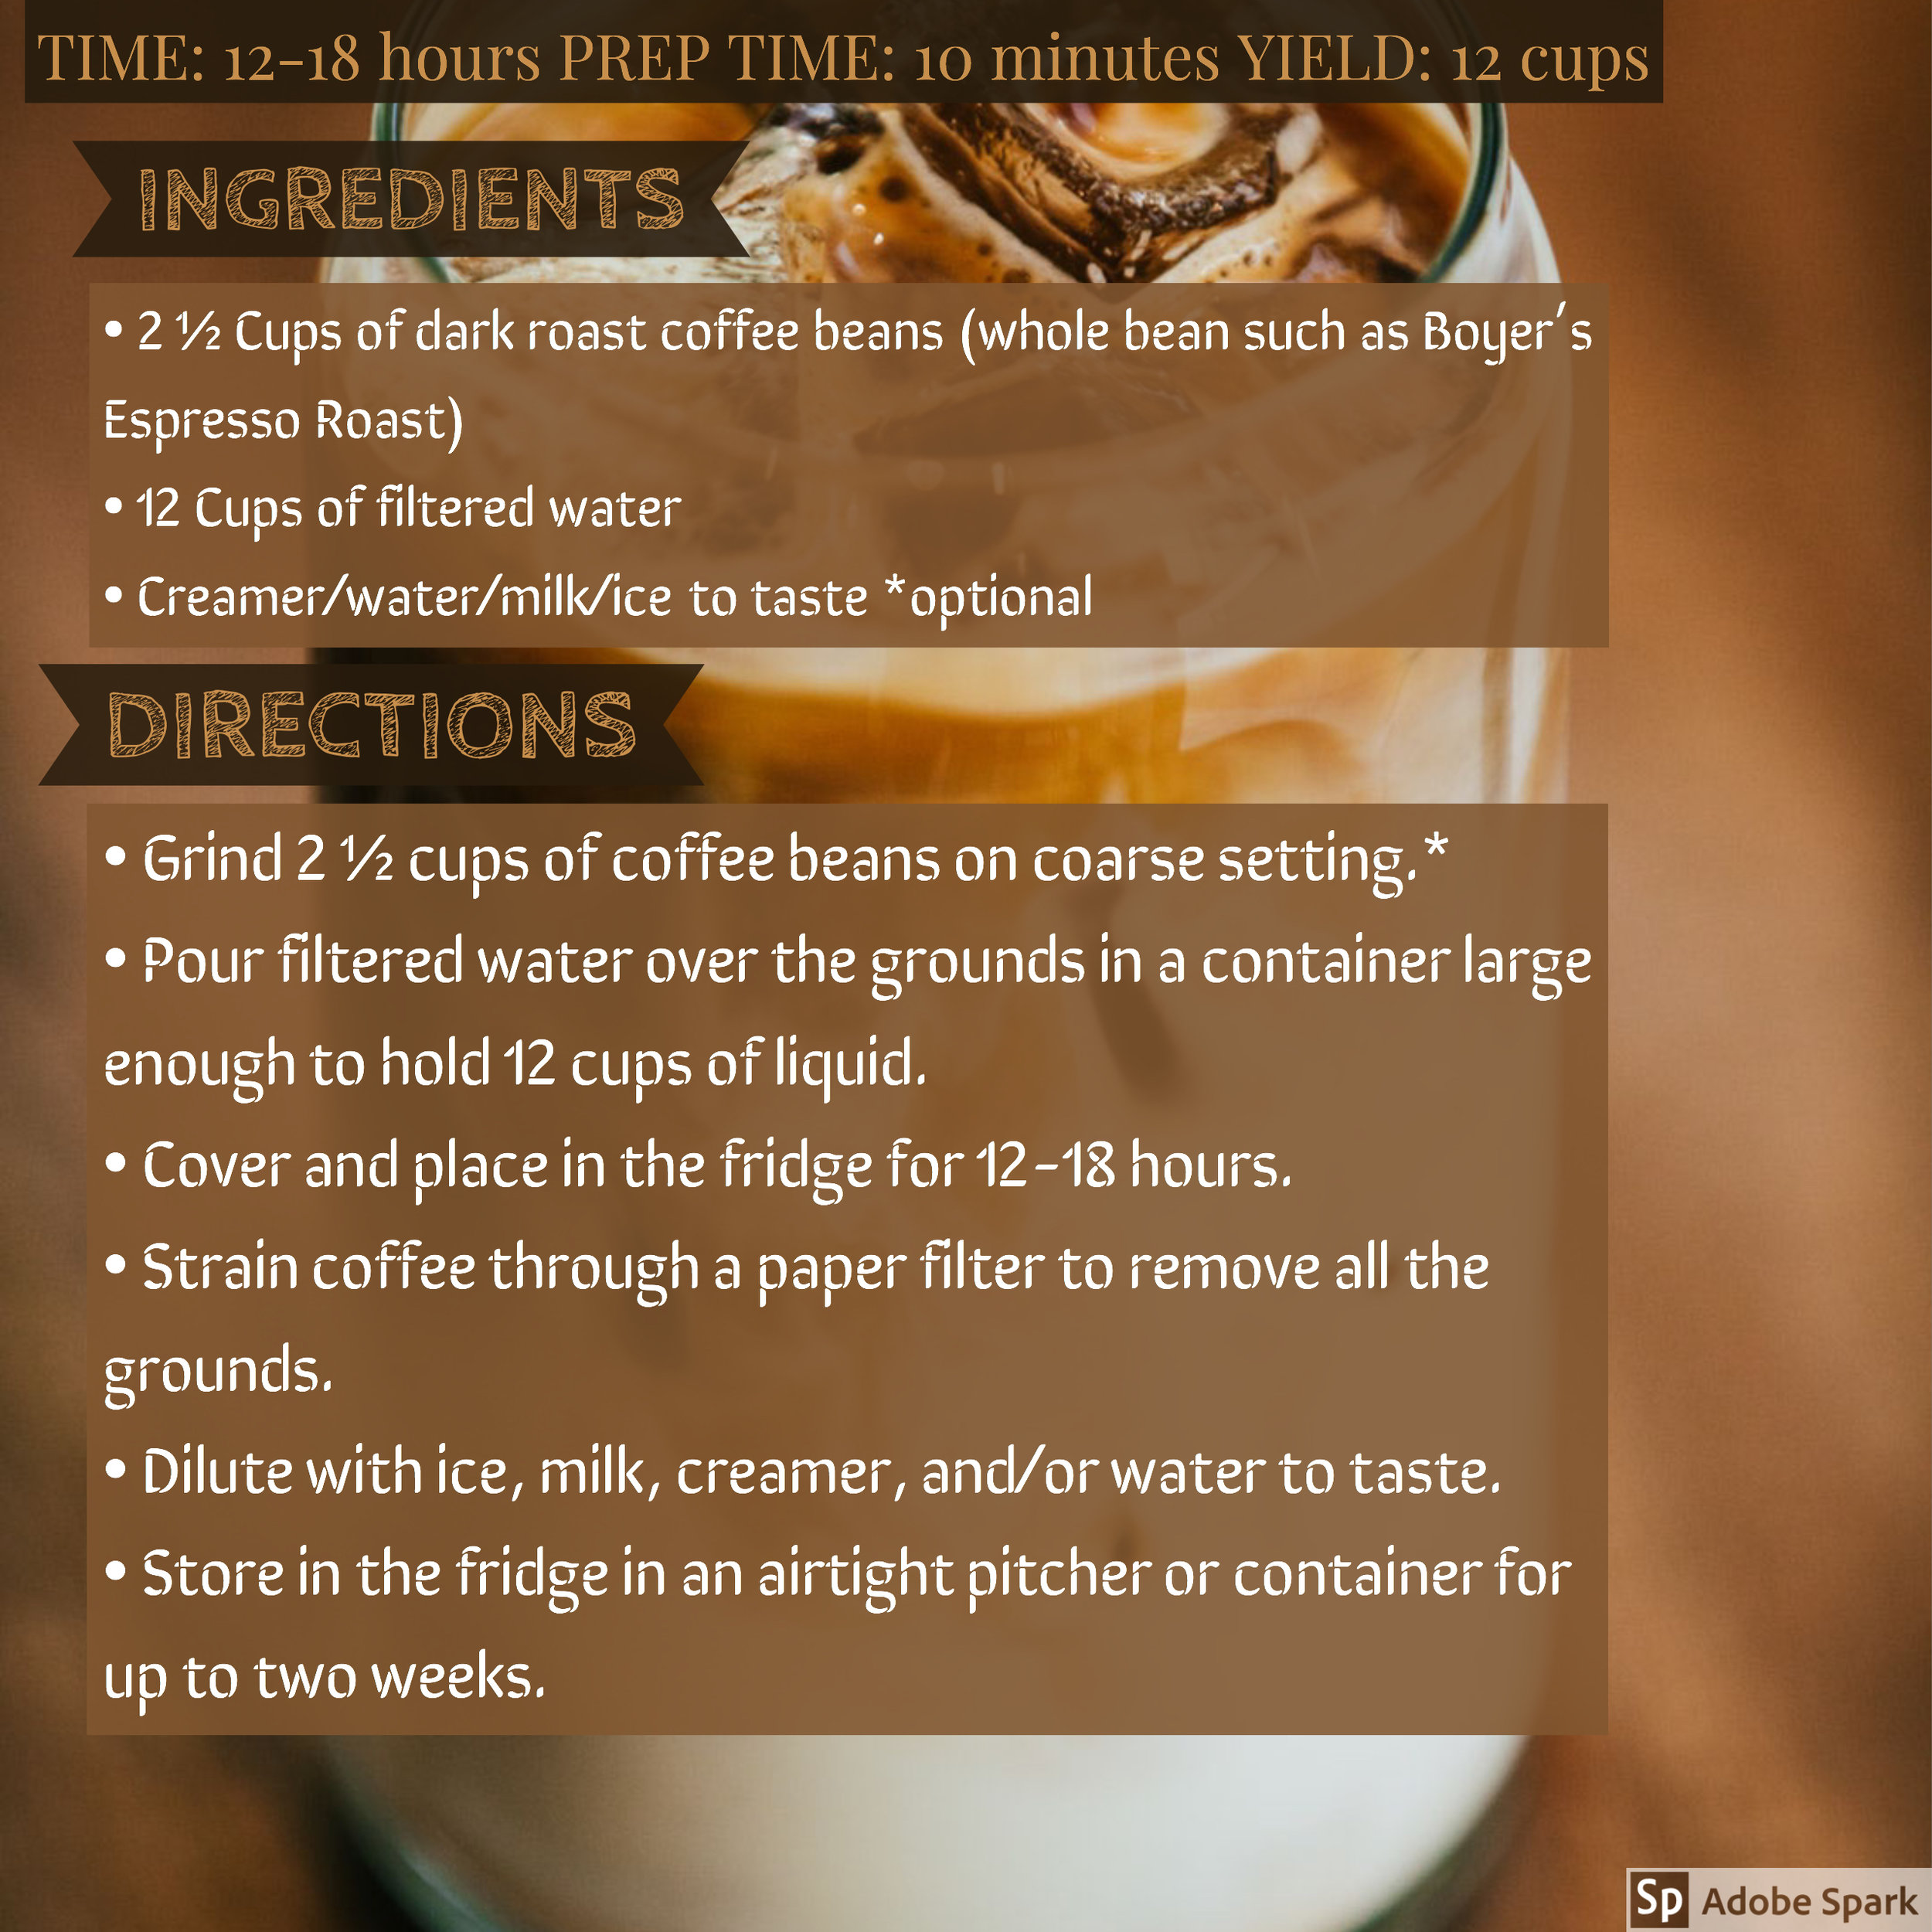 Cold_brew_ingredients_recipe_directions.jpg